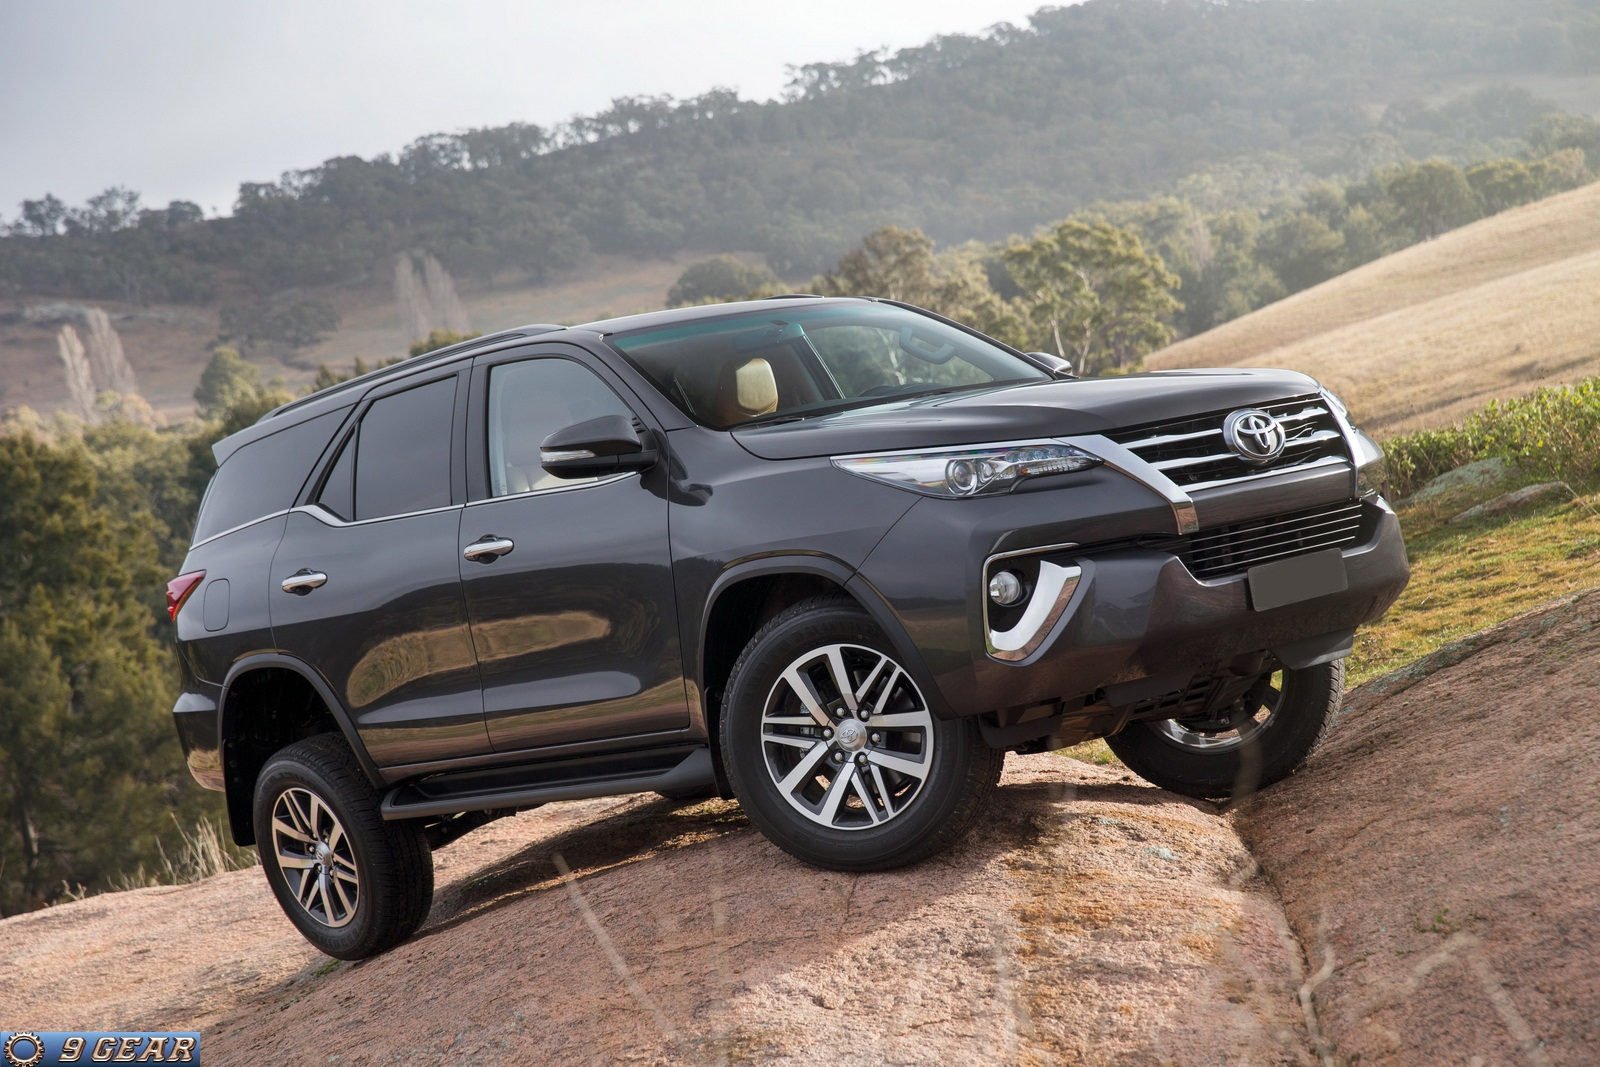 2016 Toyota Fortuner SUV revealed | Car Reviews | New Car Pictures for ...